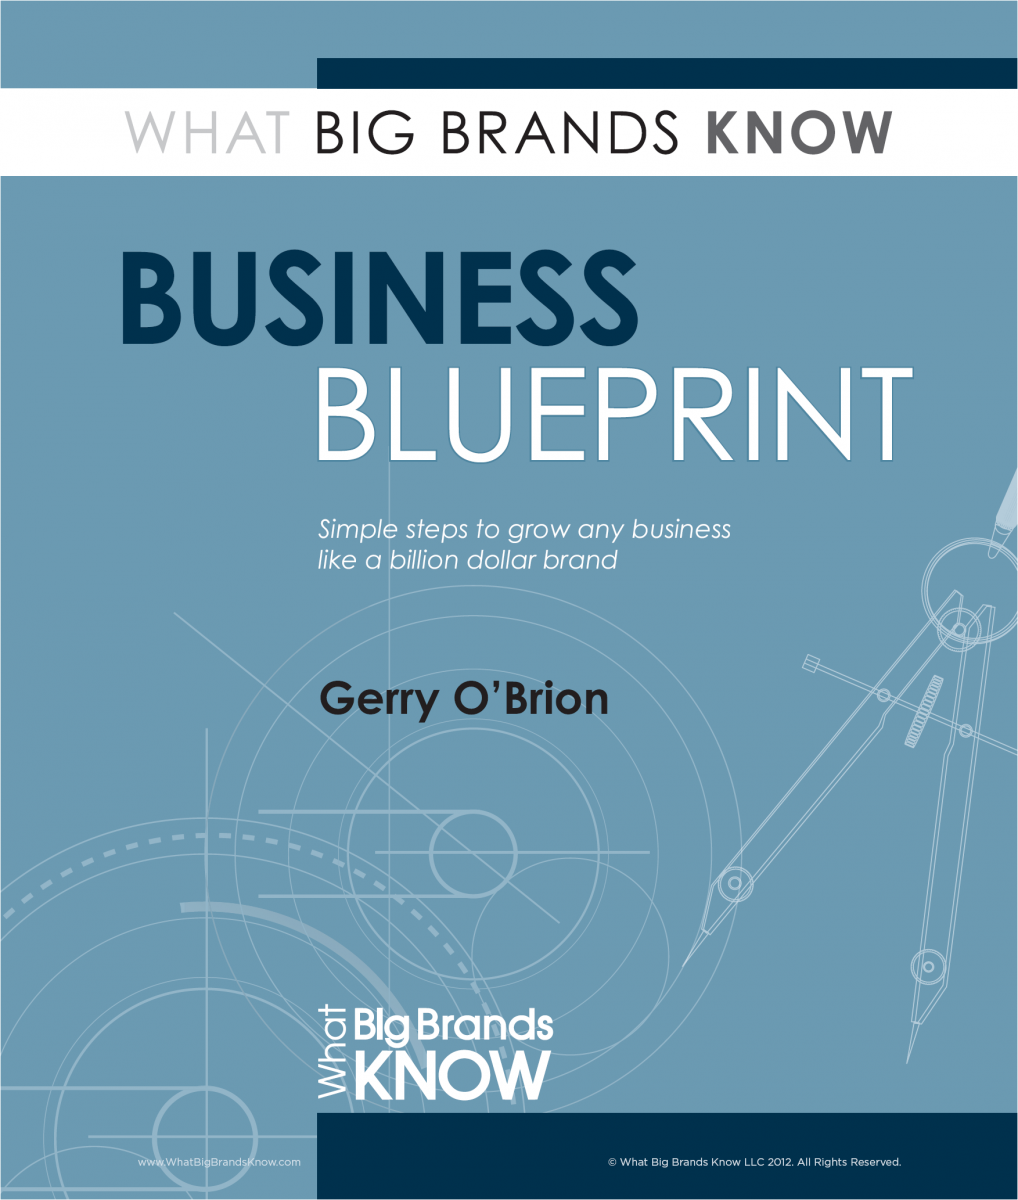 Ncb book series a business blueprint by gerry oa brion nightclub completing the blueprint will malvernweather Choice Image